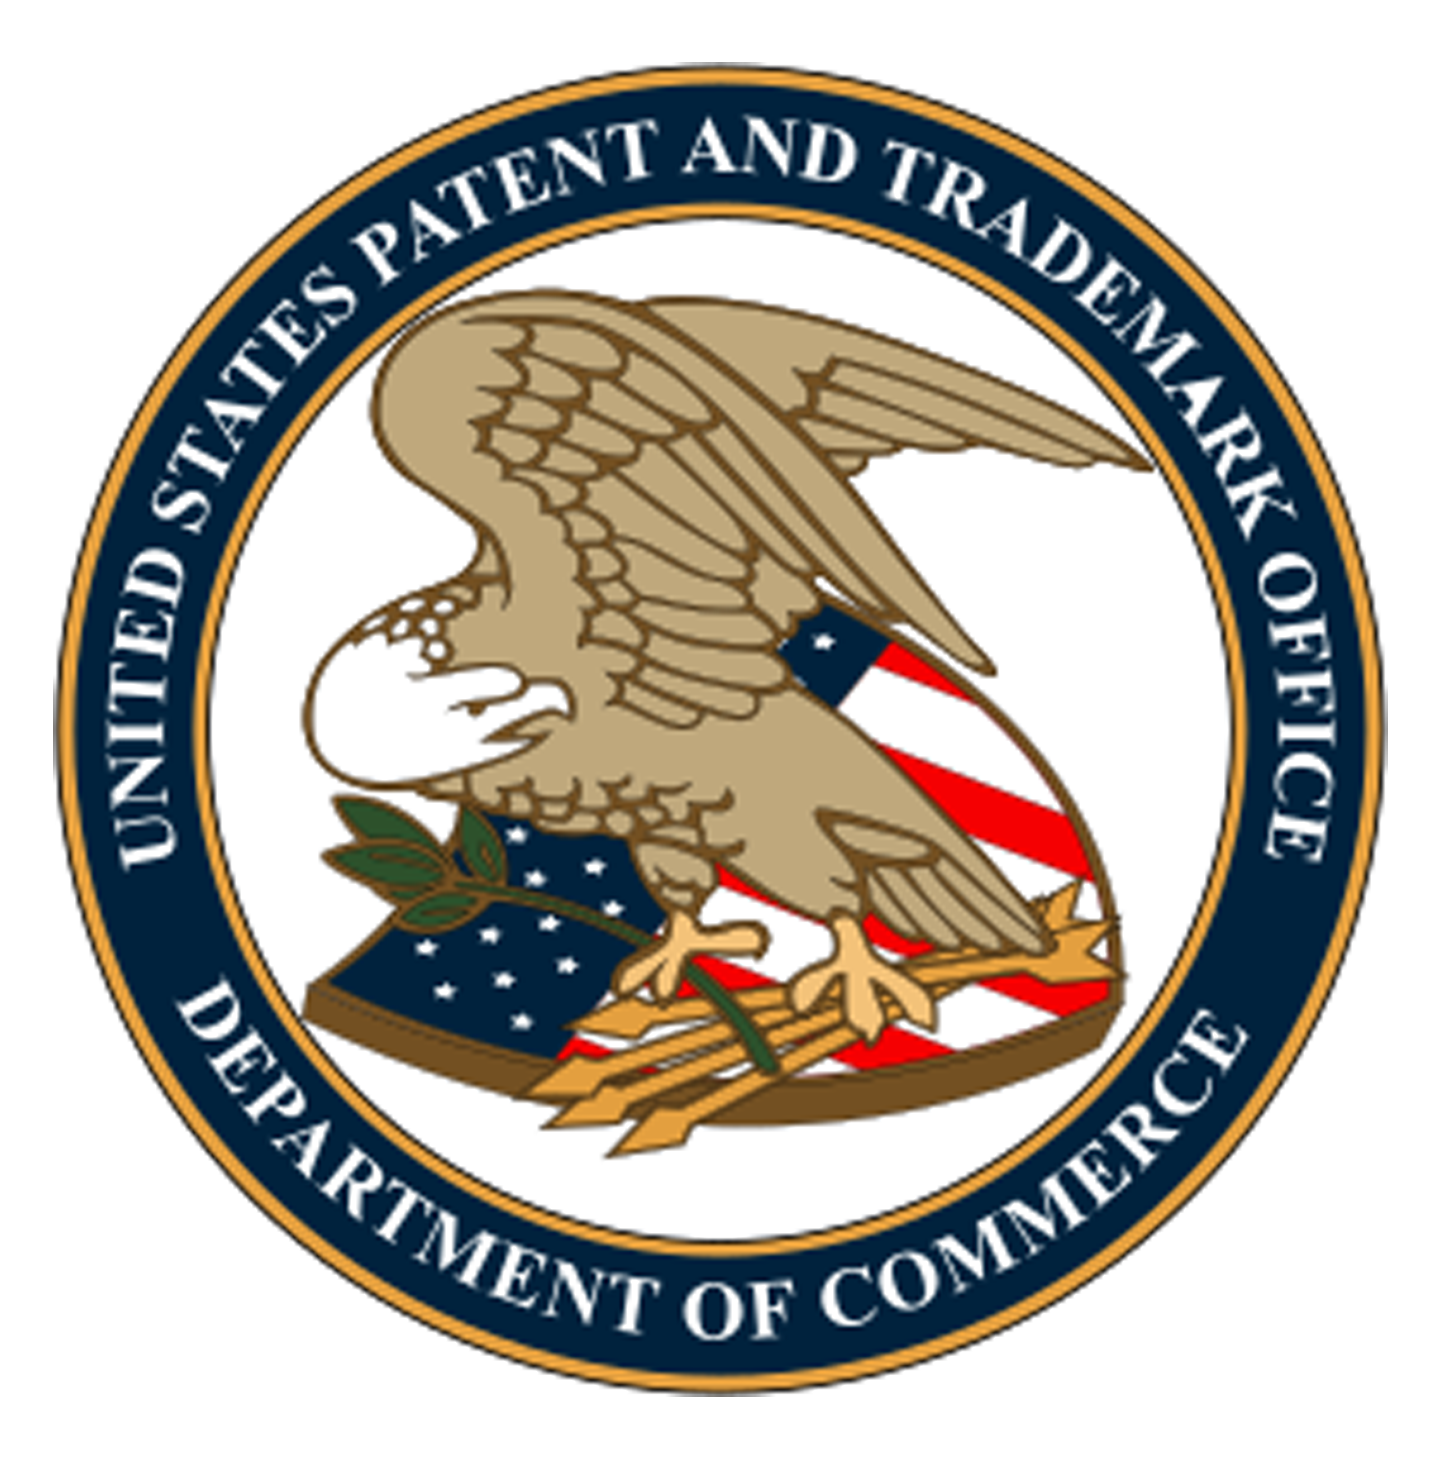 United States Patent and Trademark Office (USPTO) | Department of Commerce